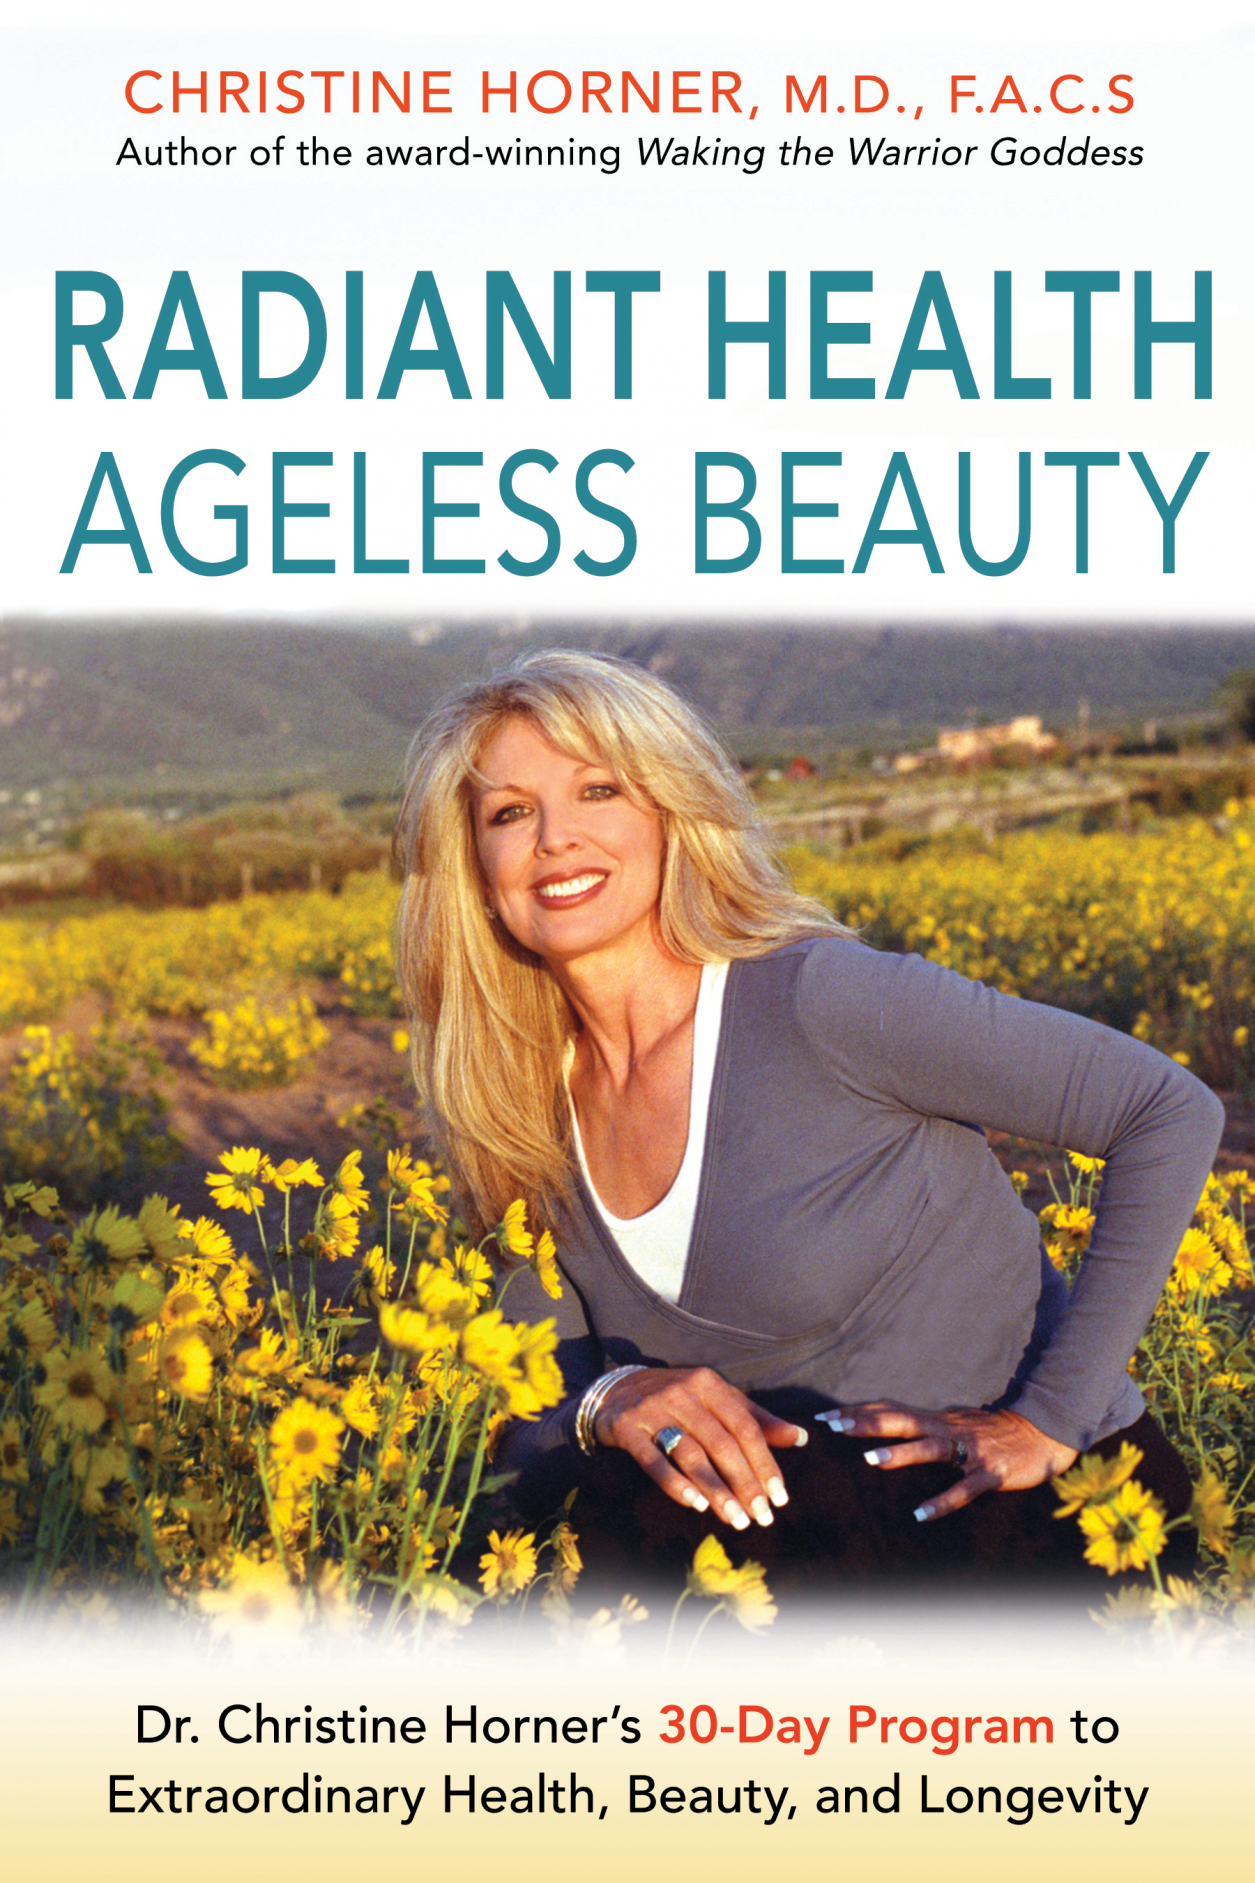 Radiant Health, Ageless Beauty by Dr. Christine Horner, MD